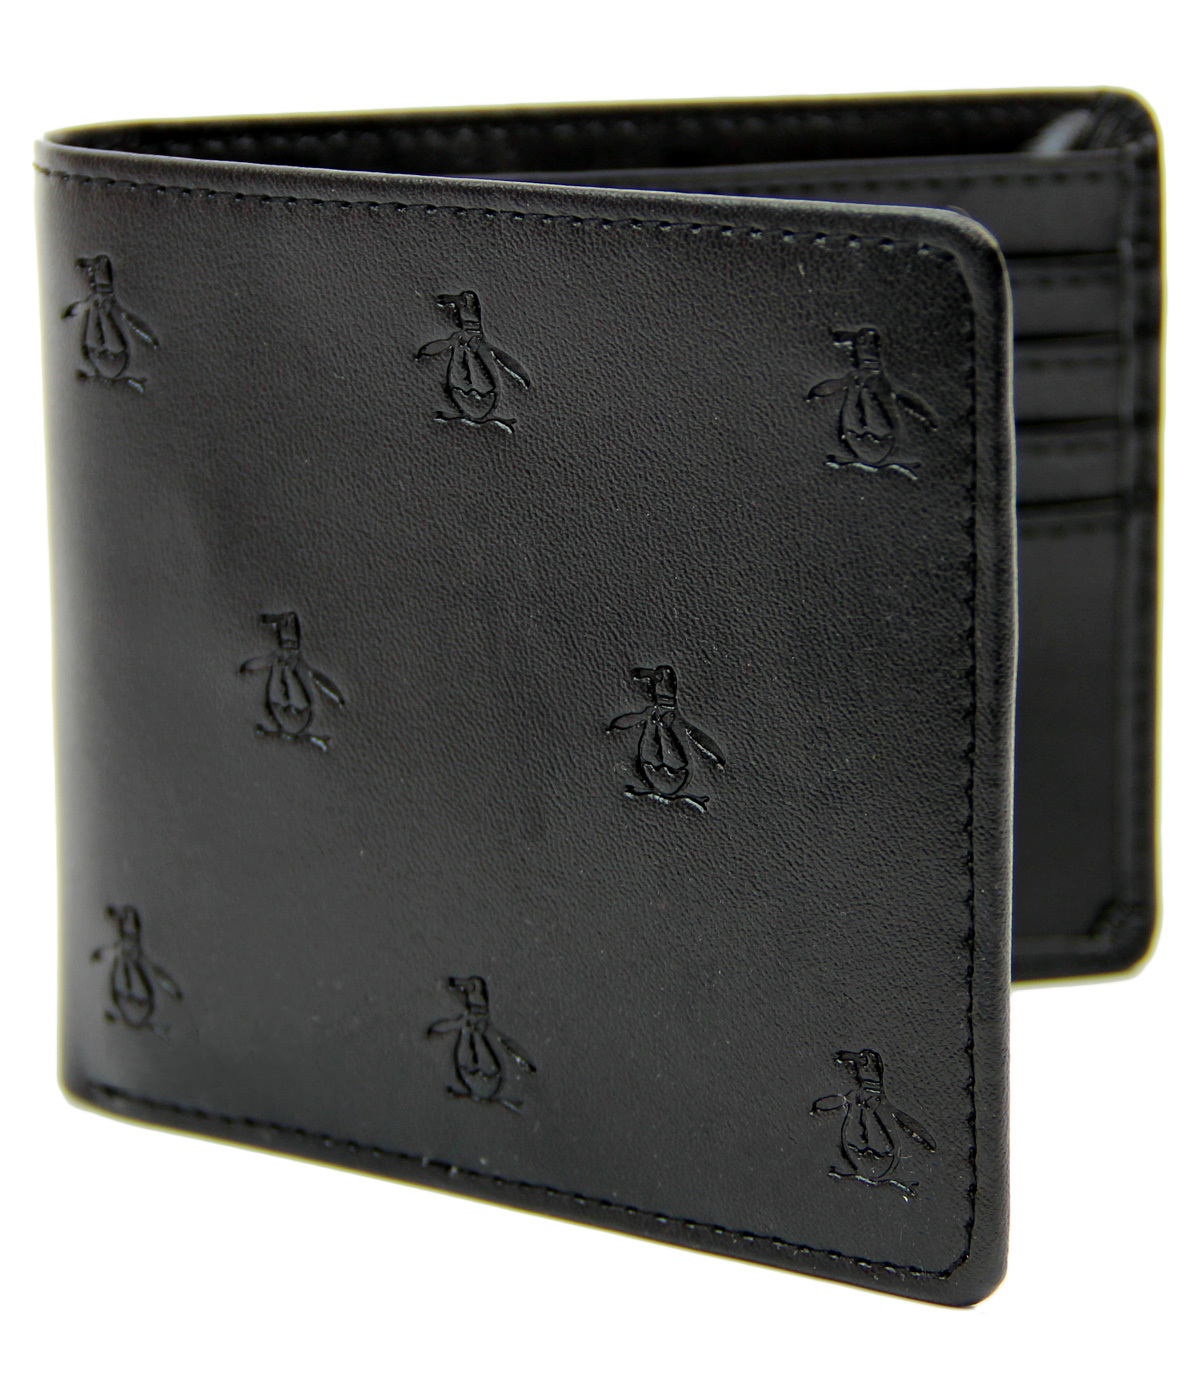 ORIGINAL PENGUIN Retro Mod Debossed Logo Wallet